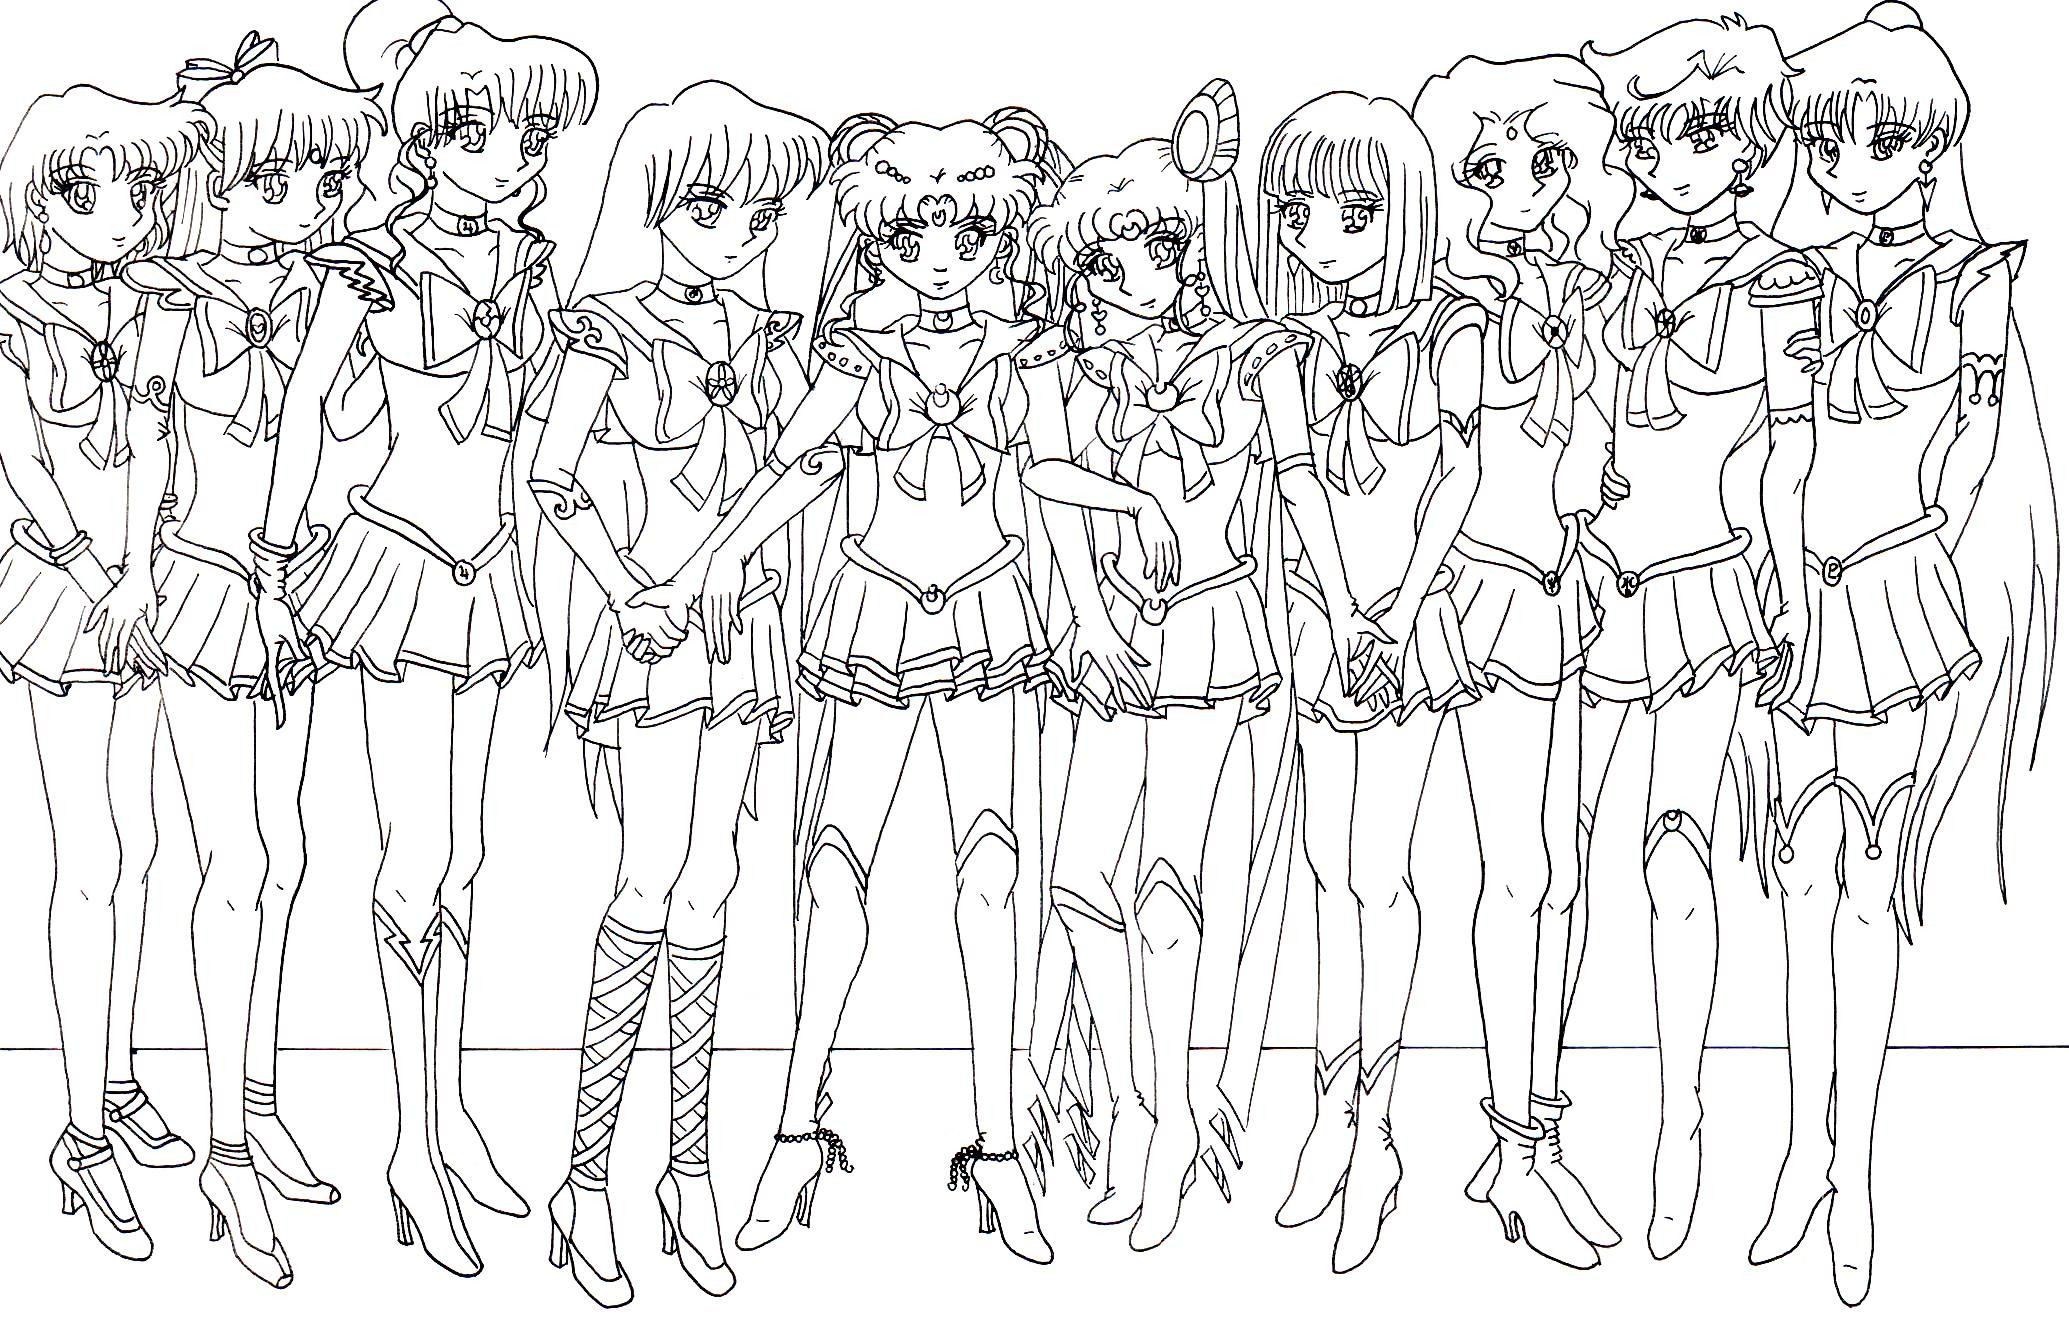 Sailor Moon Coloring Pages Sailor Moon Group Coloring Pages Color Bros